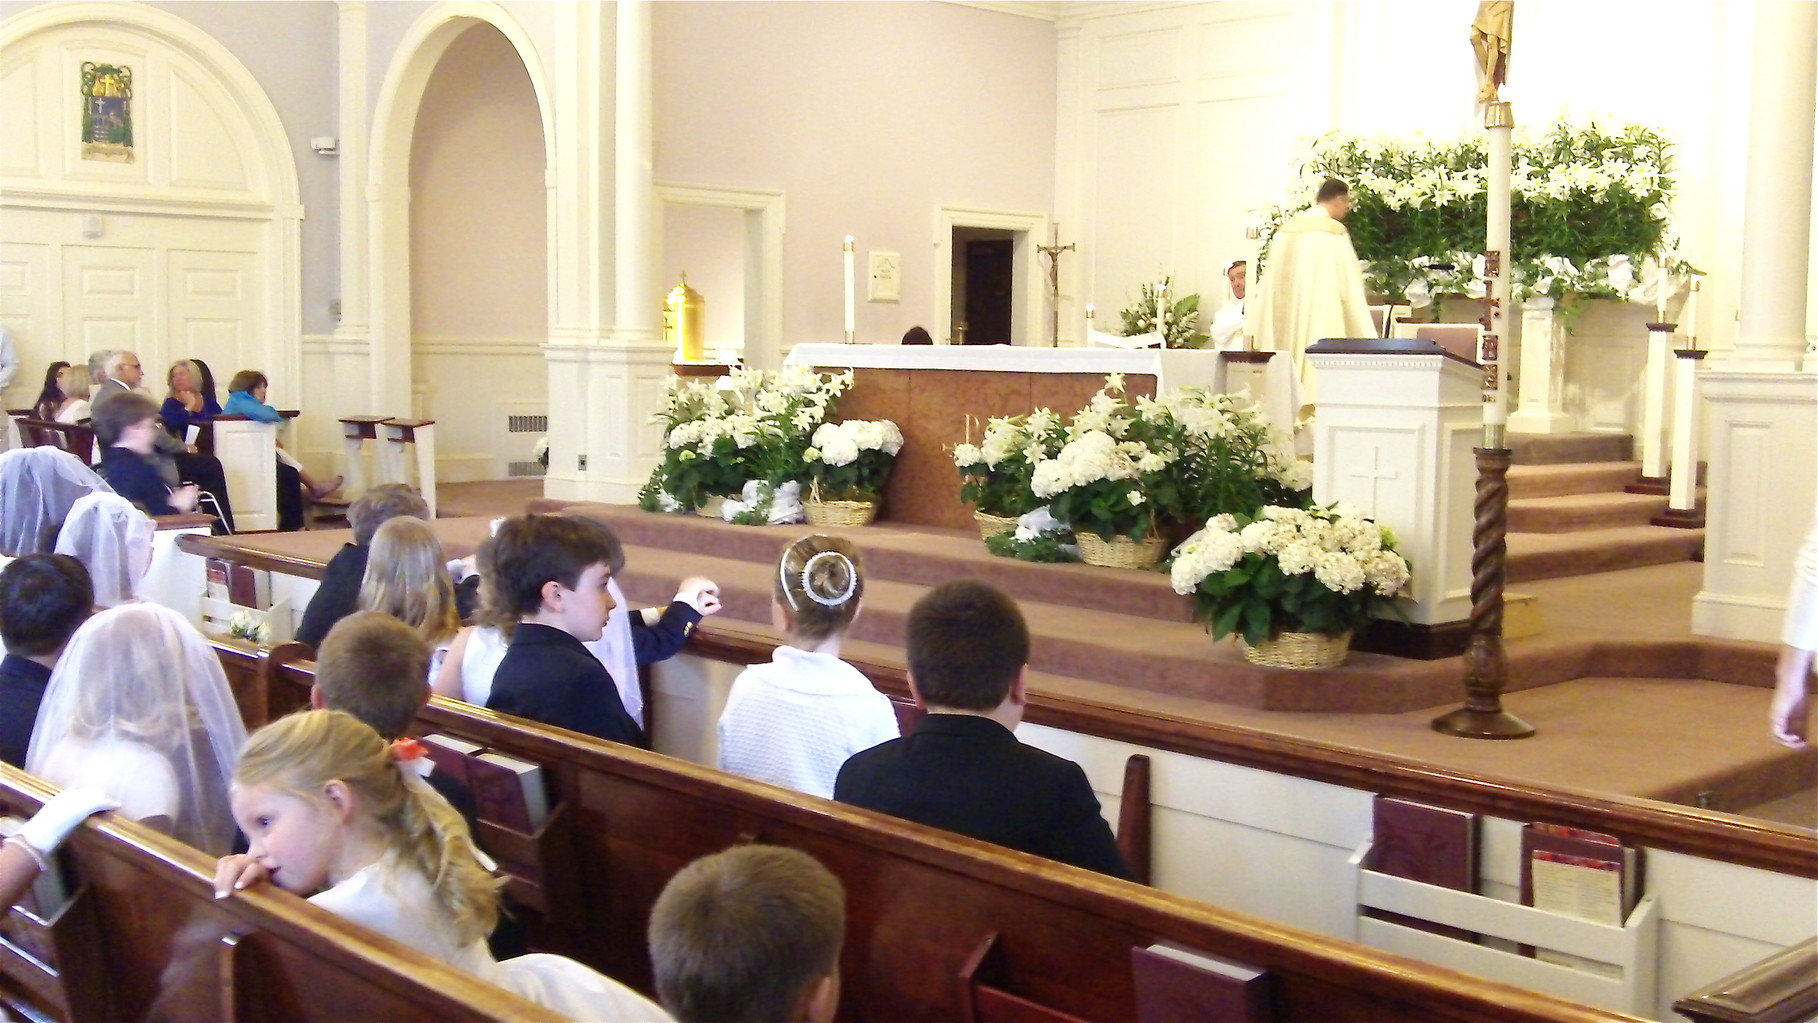 Stuart Kagel III First Communion, May, 2014